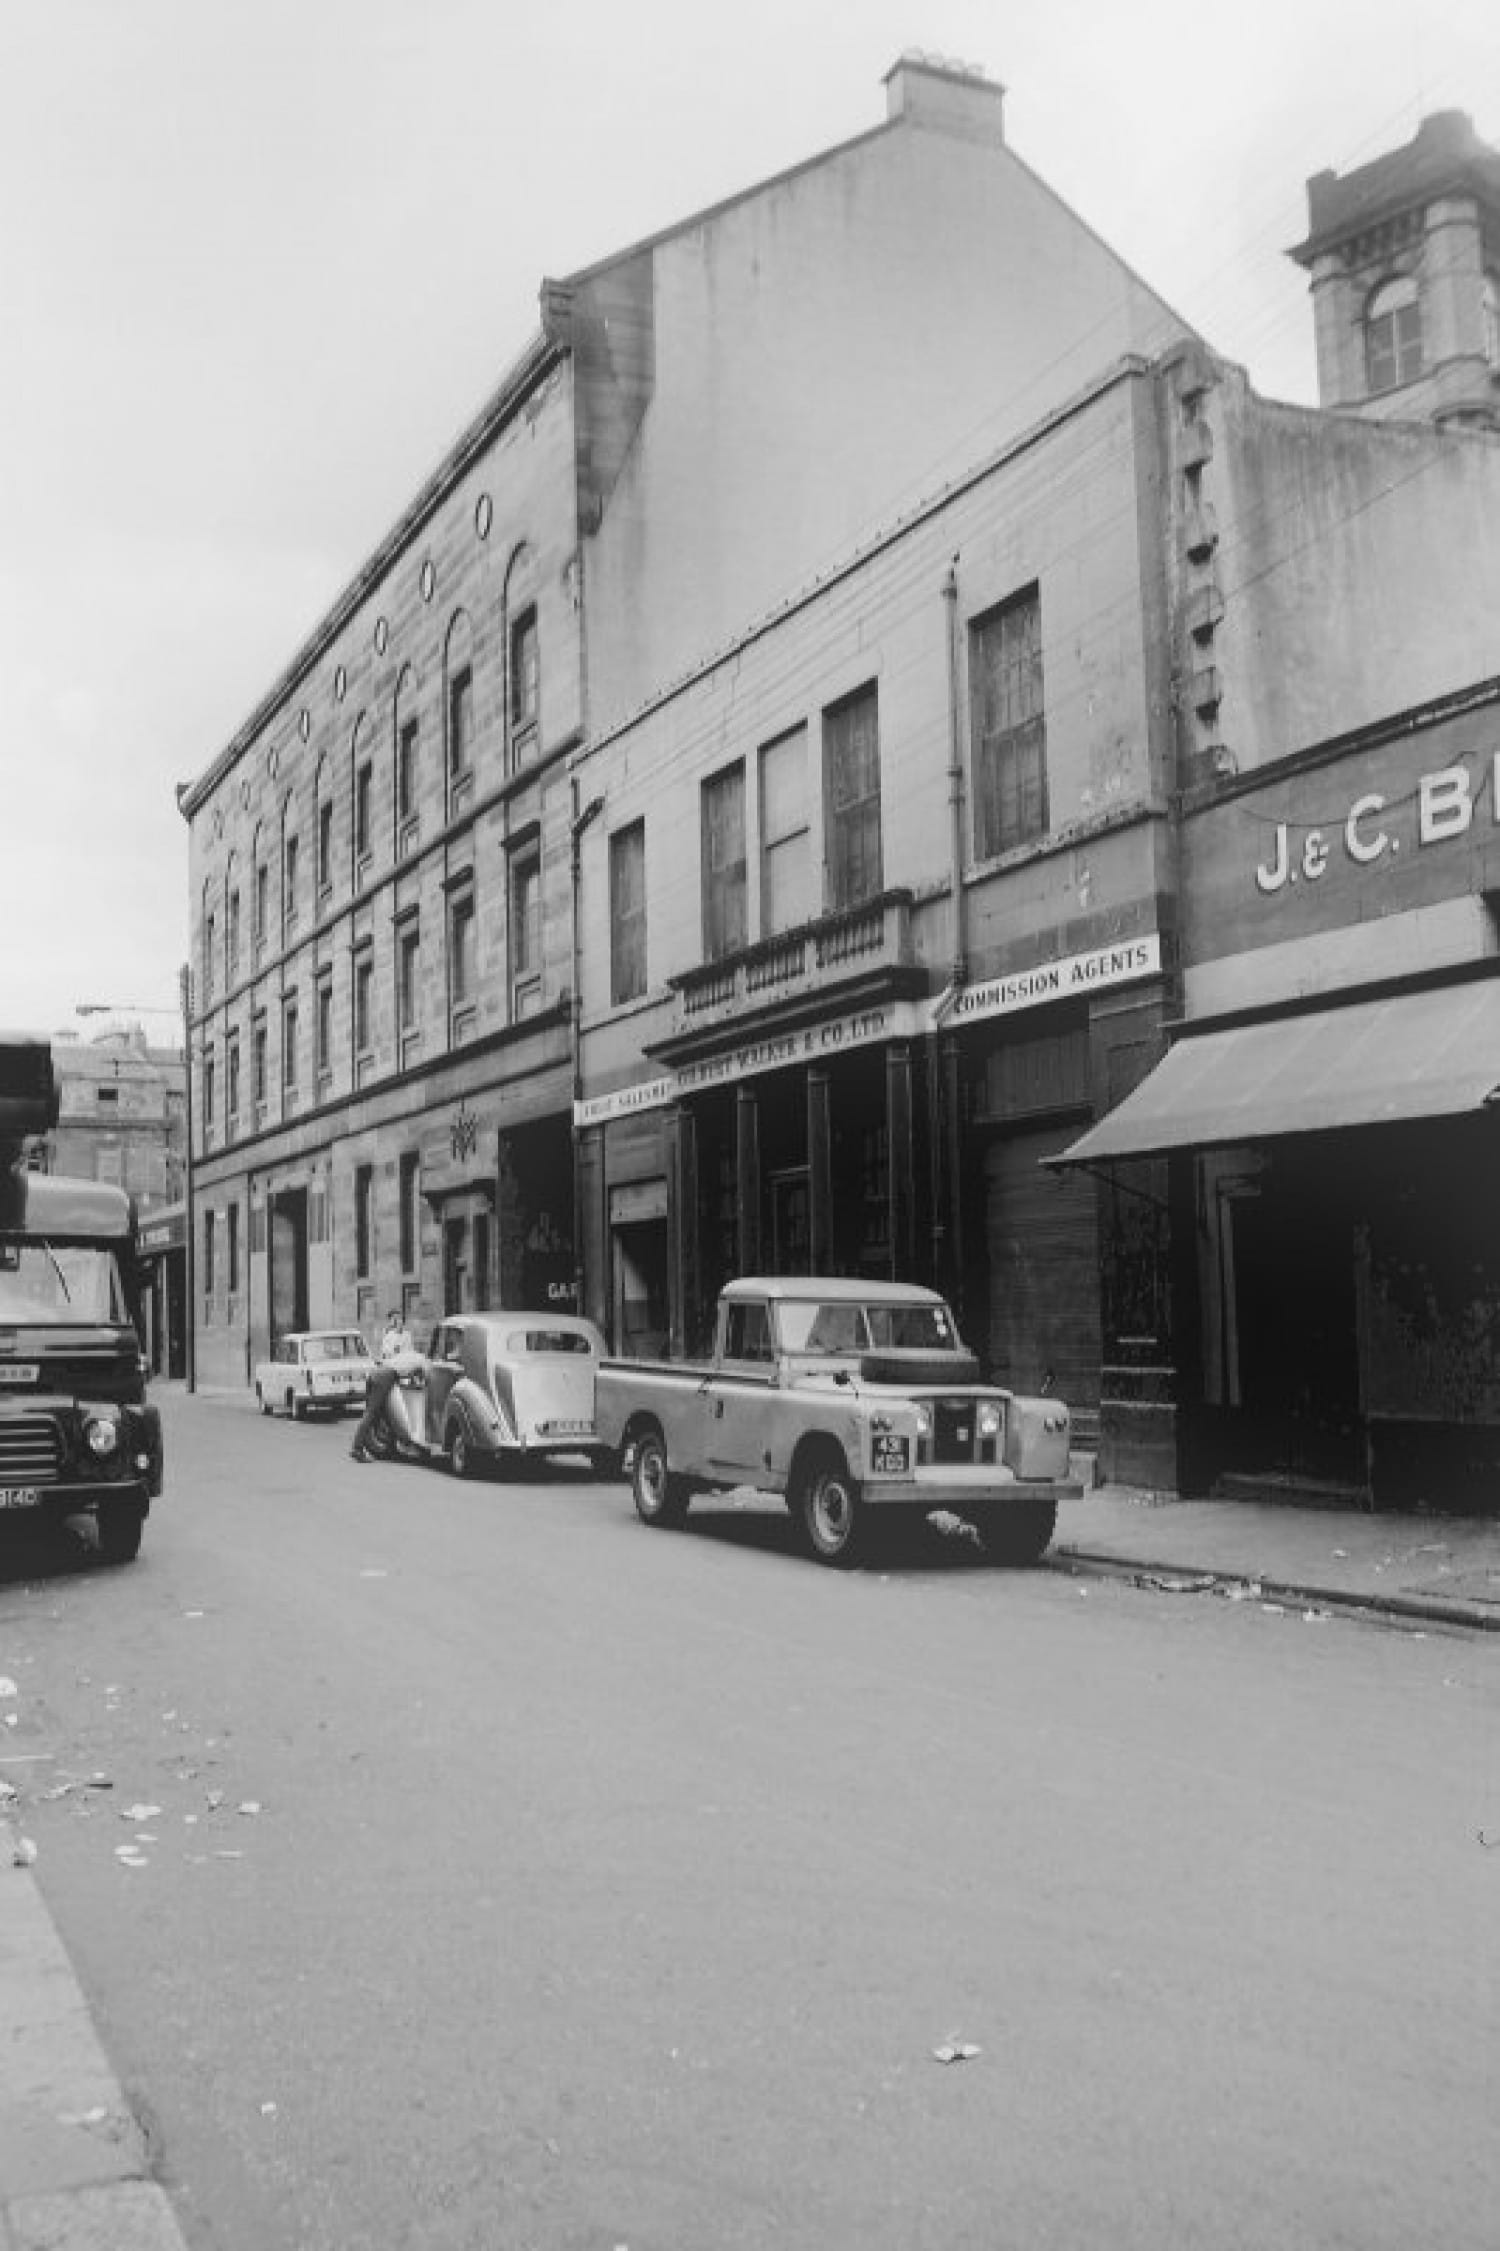 The building in 1968 (John R Hume)